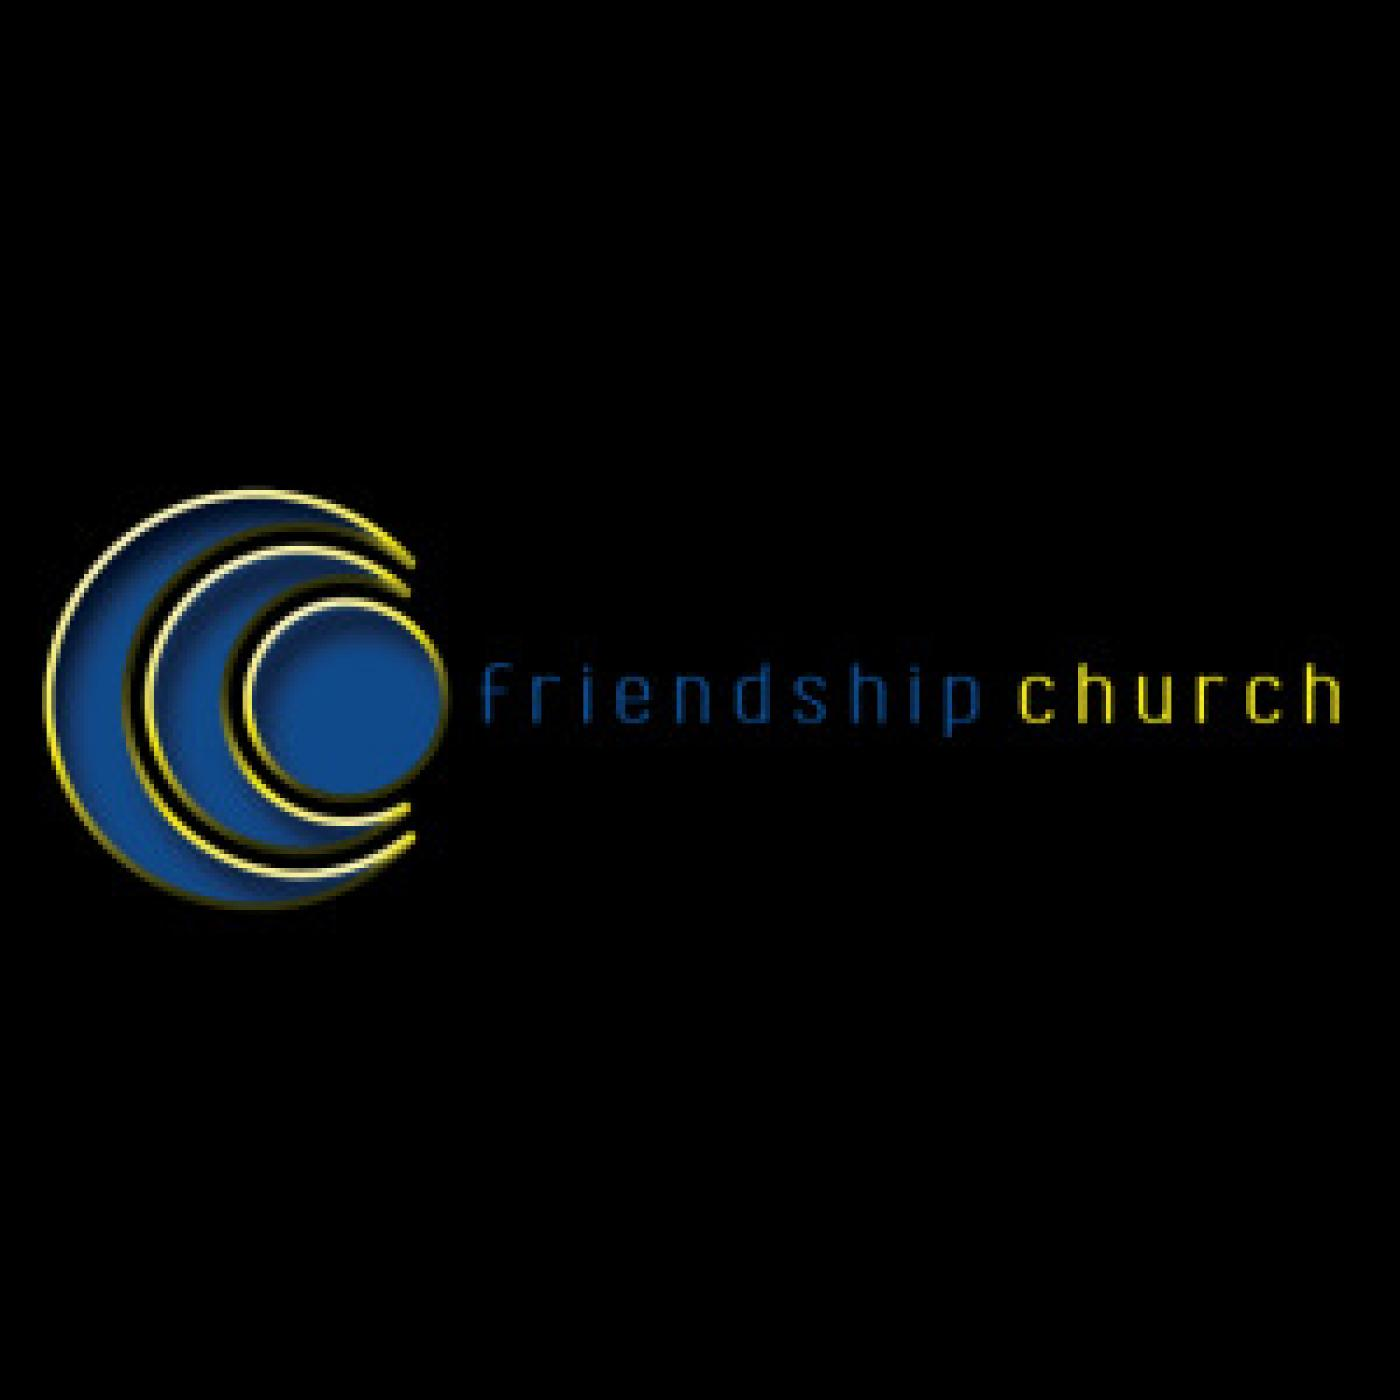 Friendship Church Podcast, Knoxville TN